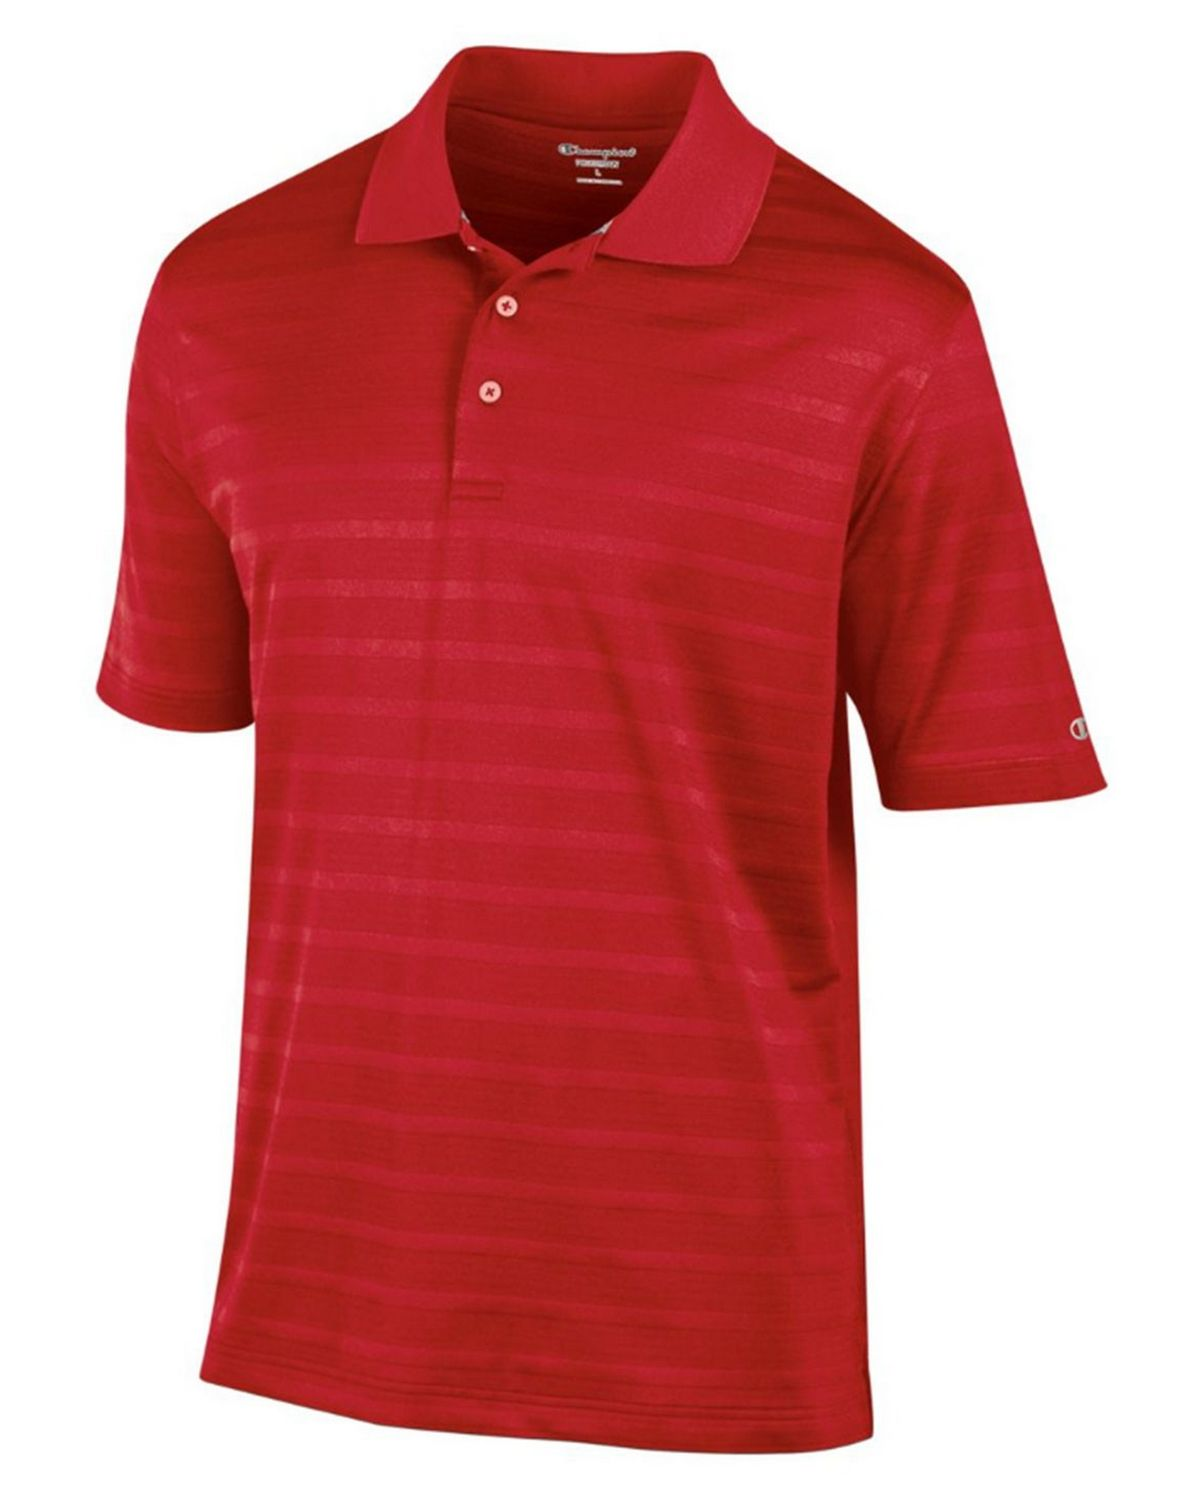 Champion G3012 Mens Polo Shirt - Scarlet - XL G3012